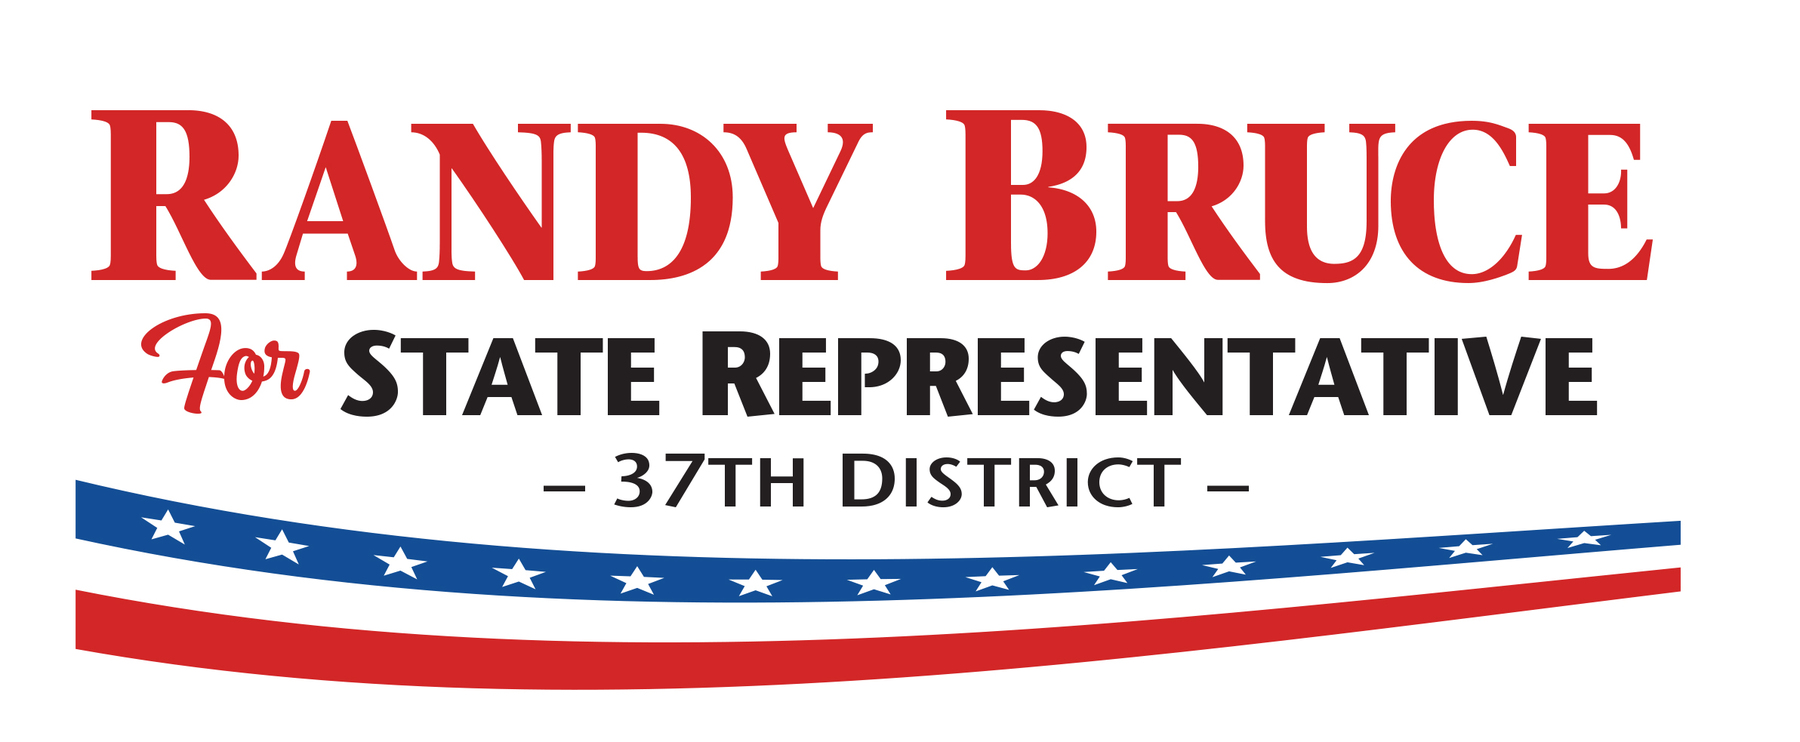 Randy Bruce for State Rep.: General Fund